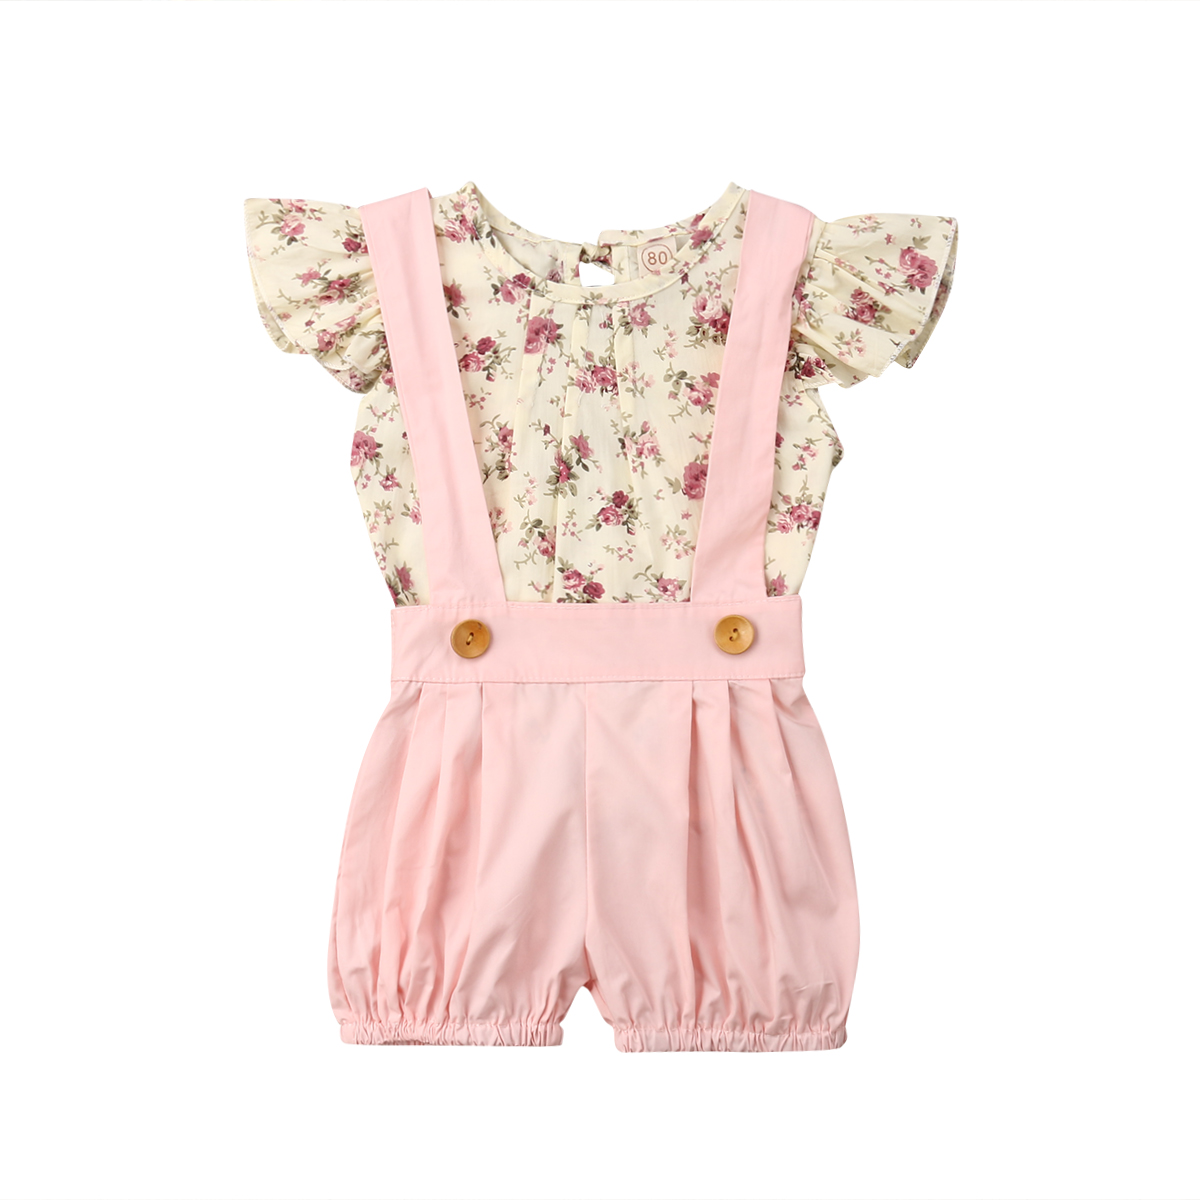 Kids Baby Girl Floral T-shirt Tops Suspender Dress 2PCS Outfits Princess Clothes